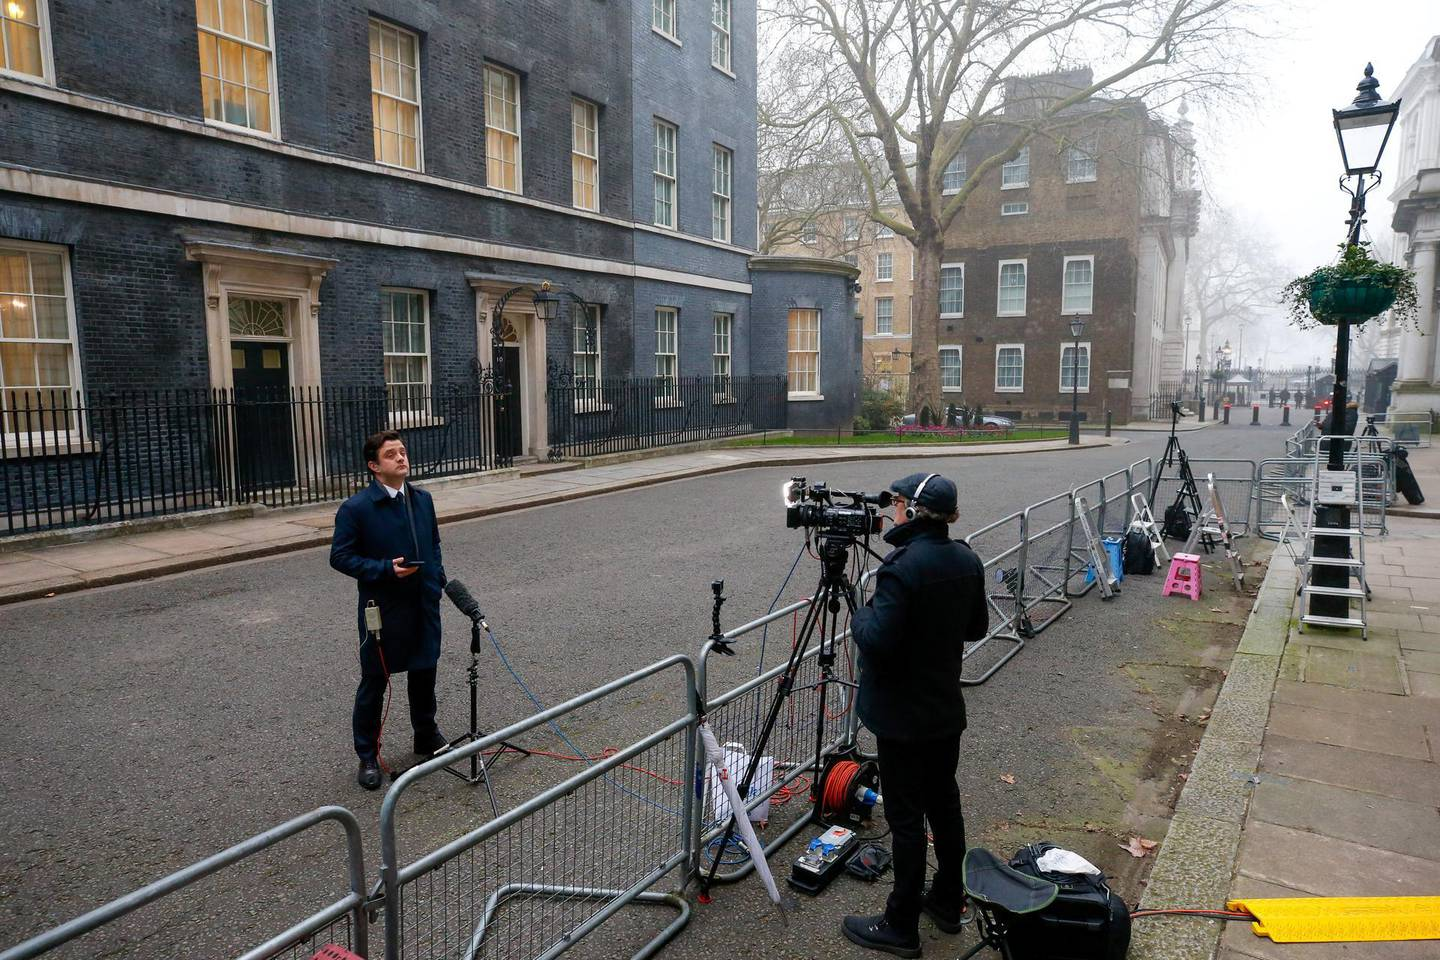 A television journalist stands outside 10 Downing Street ahead of Rishi Sunak, U.K. chancellor of the exchequer, presenting the budget statement in Parliament in London, U.K., on Wednesday, March 3, 2021. Sunakwill extend furlough payments to U.K. workers until the end of September, protecting millions of people whose jobs were suspended during the coronavirus pandemic until after restrictions are set to be lifted. Photographer: Hollie Adams/Bloomberg